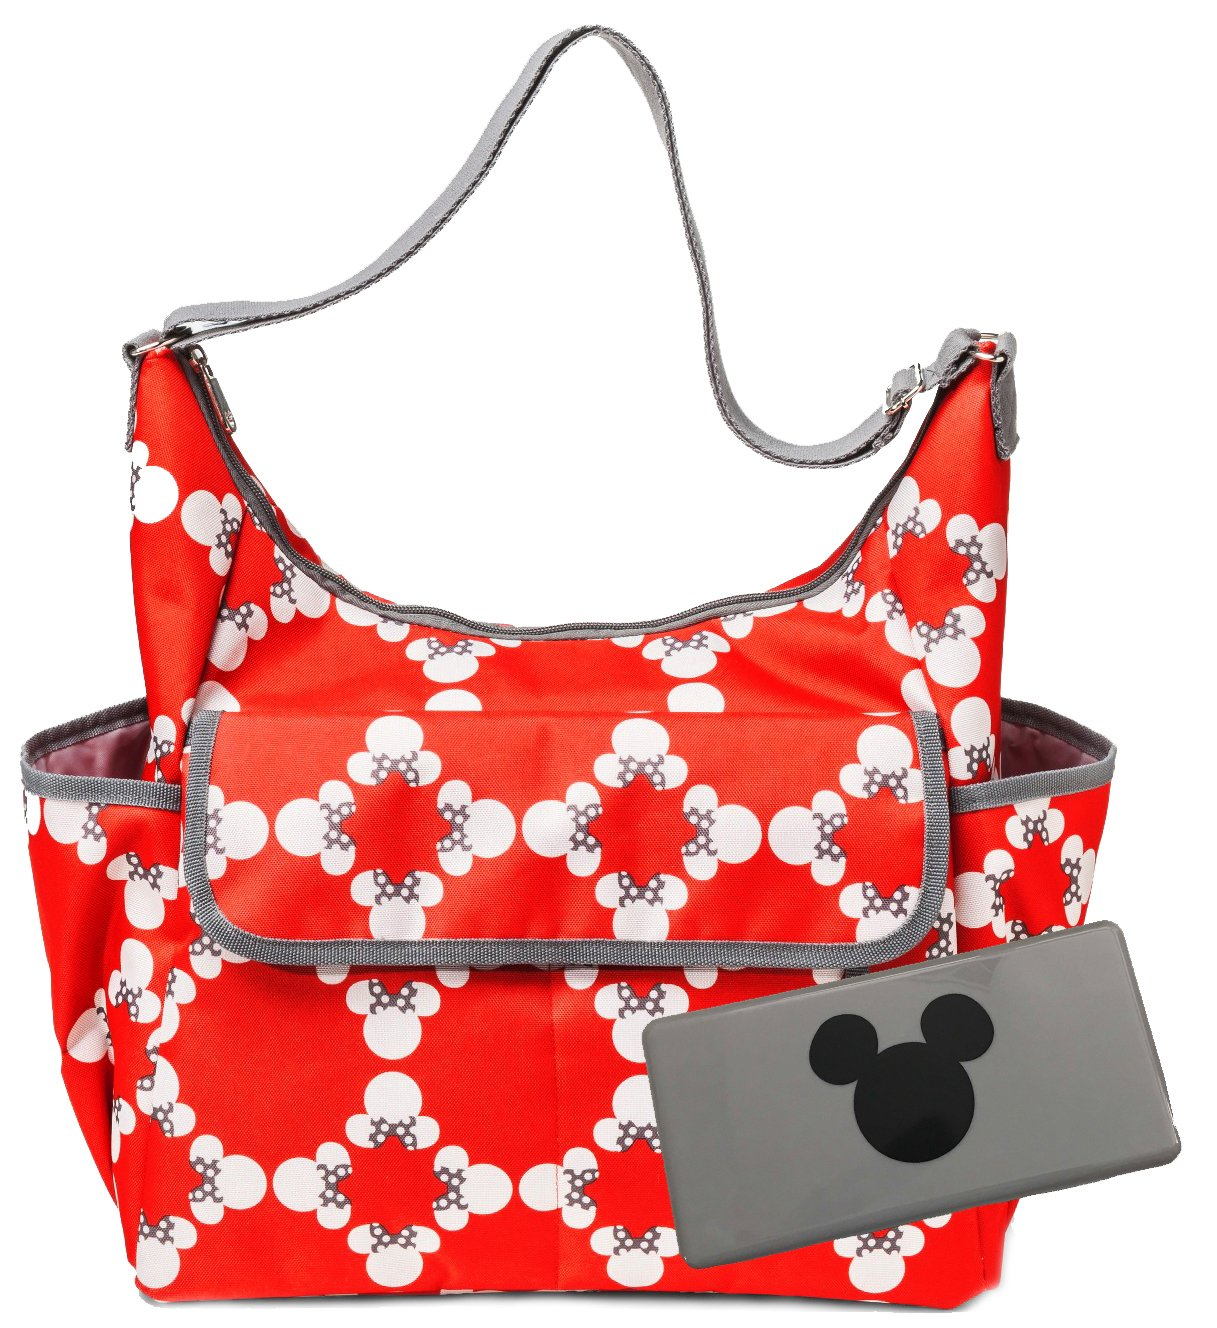 Disney Classic Carryall Diaper Bag - Minnie Mouse -